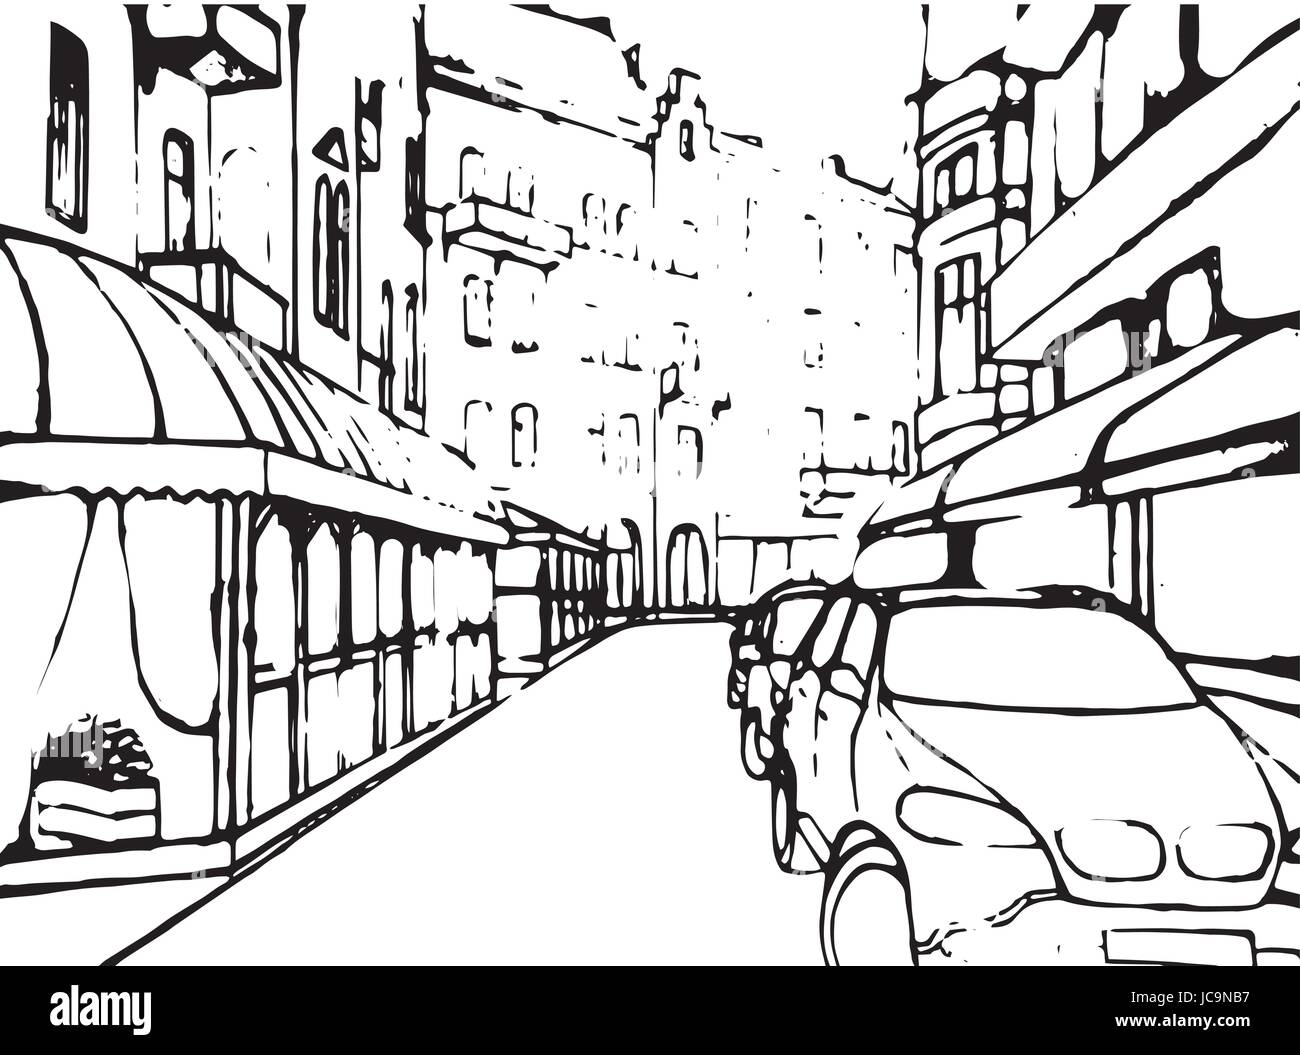 street scene stock vector images alamy Historic Manor House city street building house realistic contrast black and white line car historical lviv urban life landscape